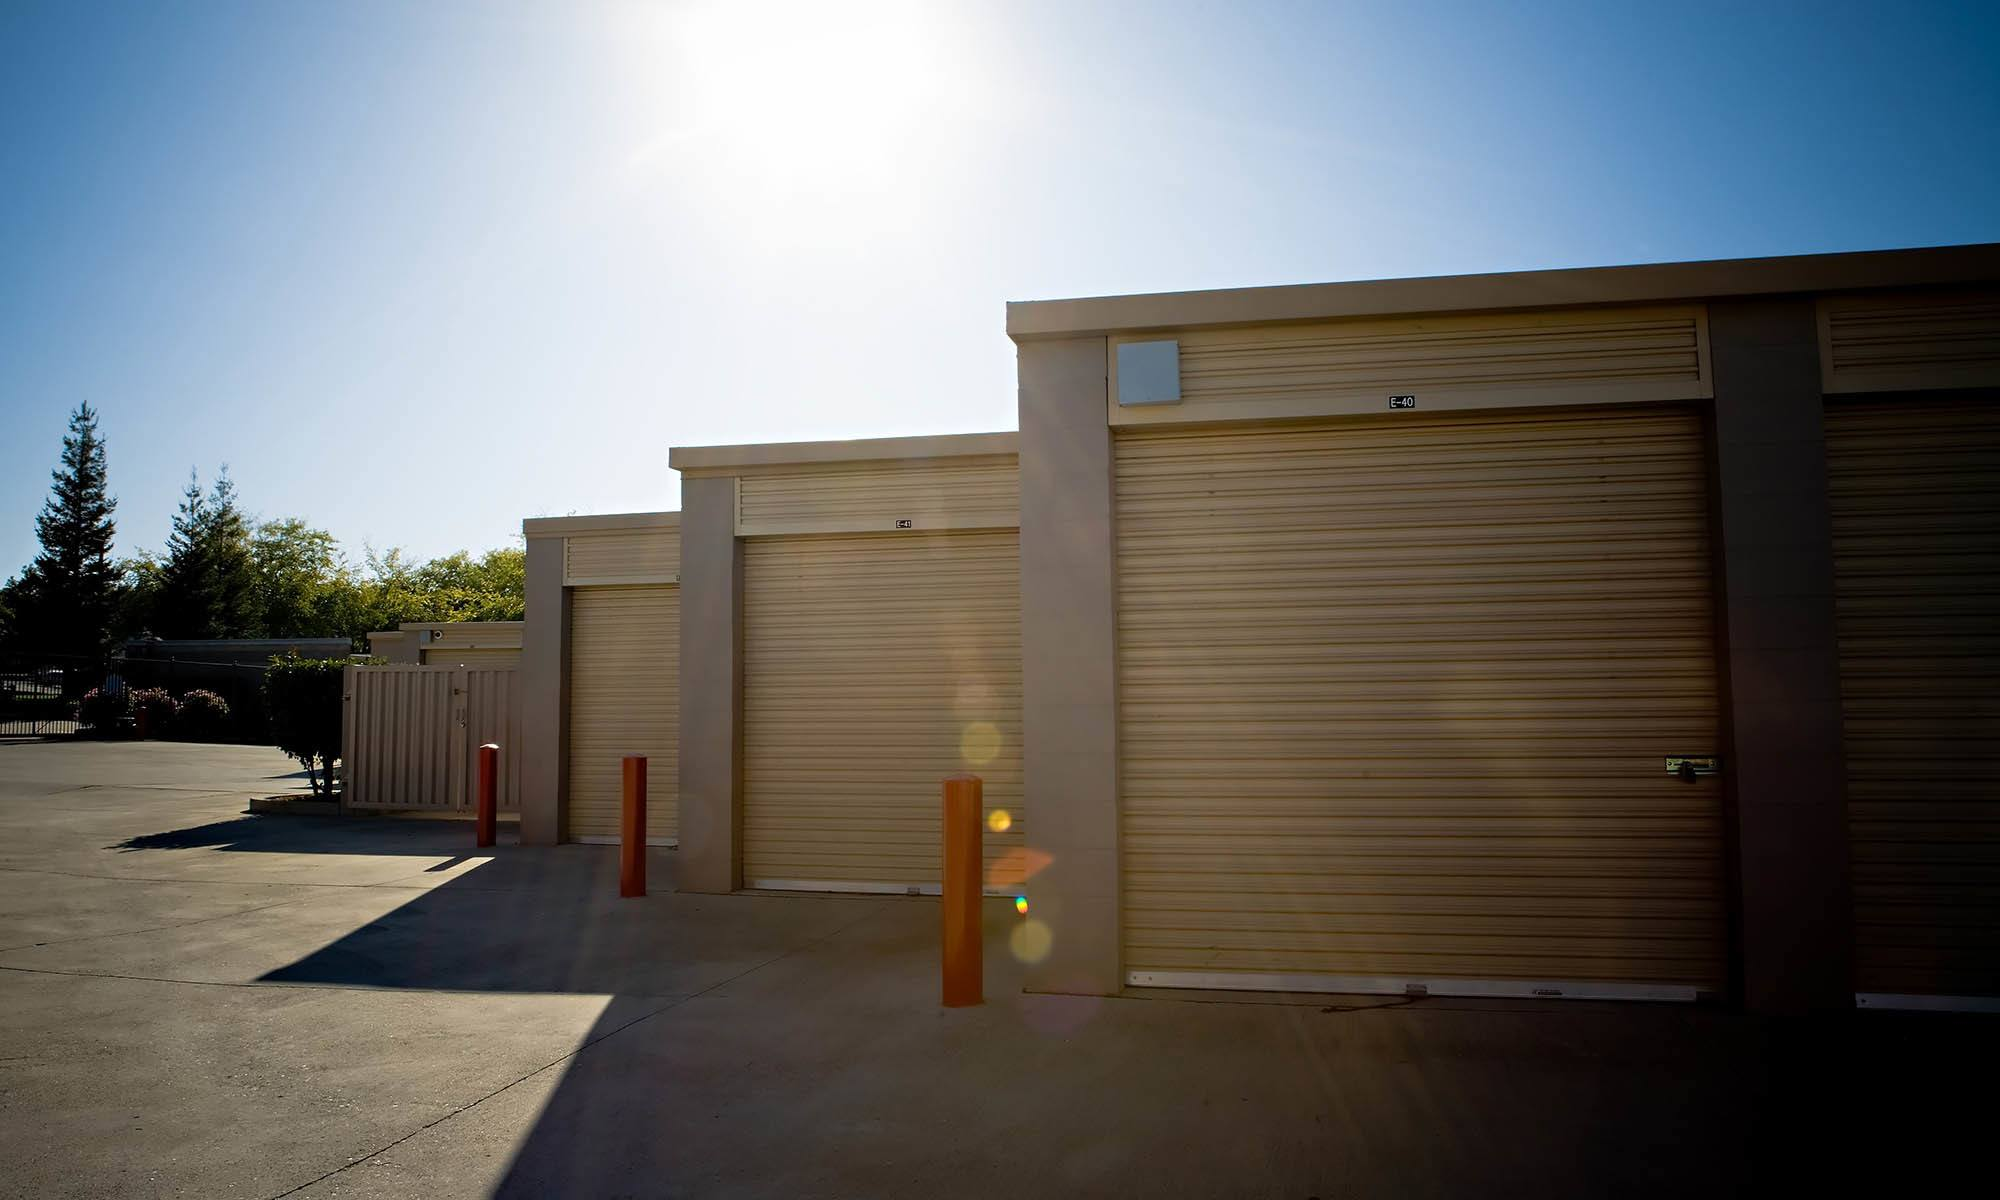 Self storage in Roseville, CA